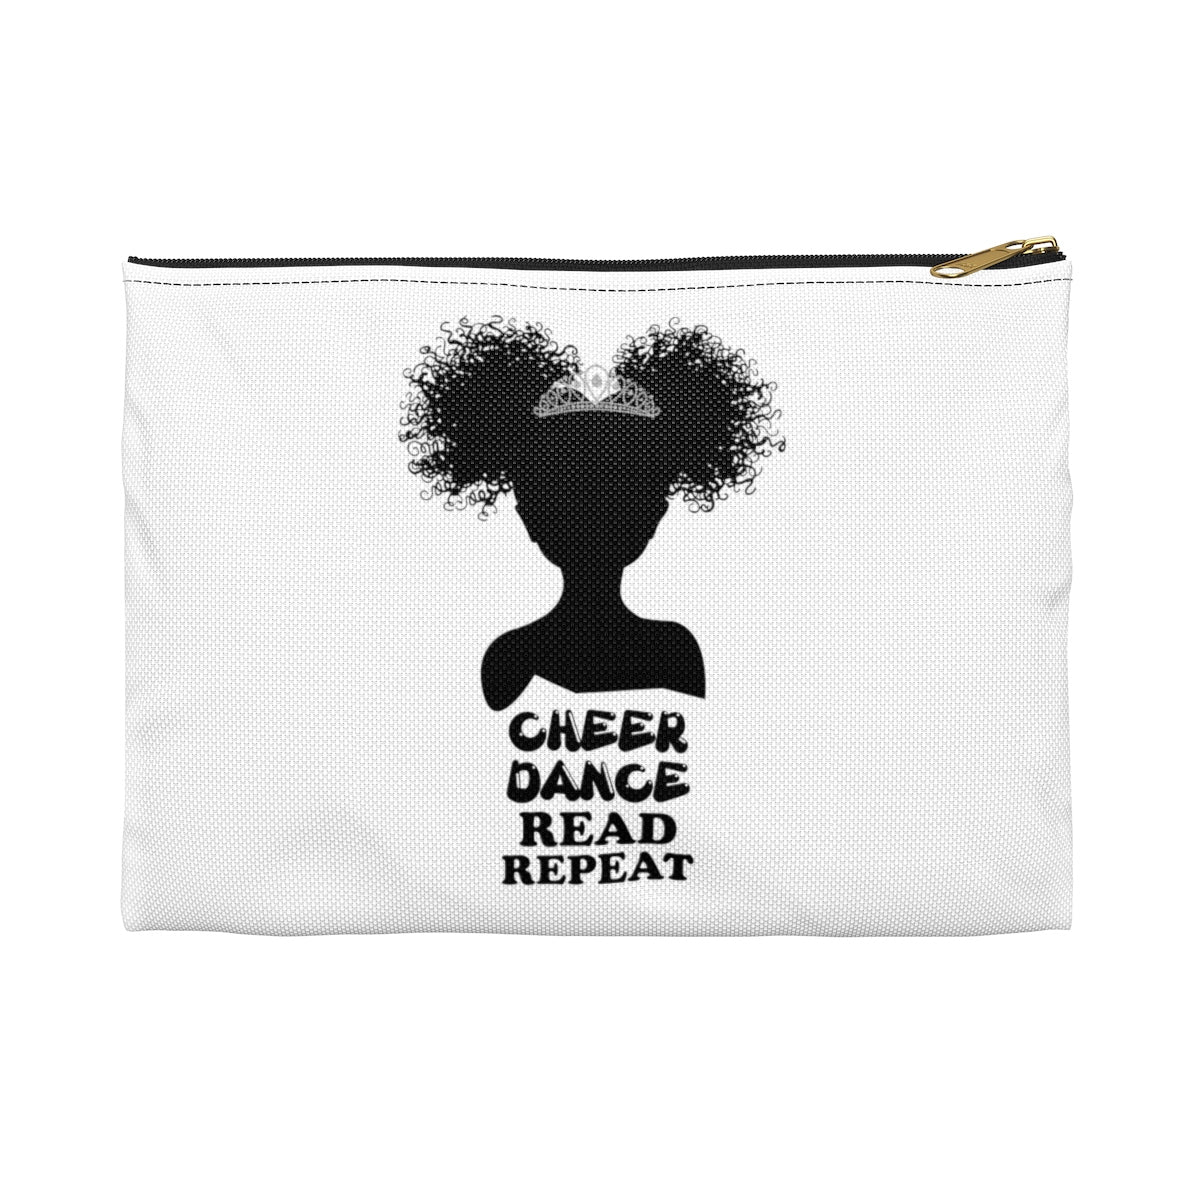 Cheer Dance Read Repeat: White Pencil Case